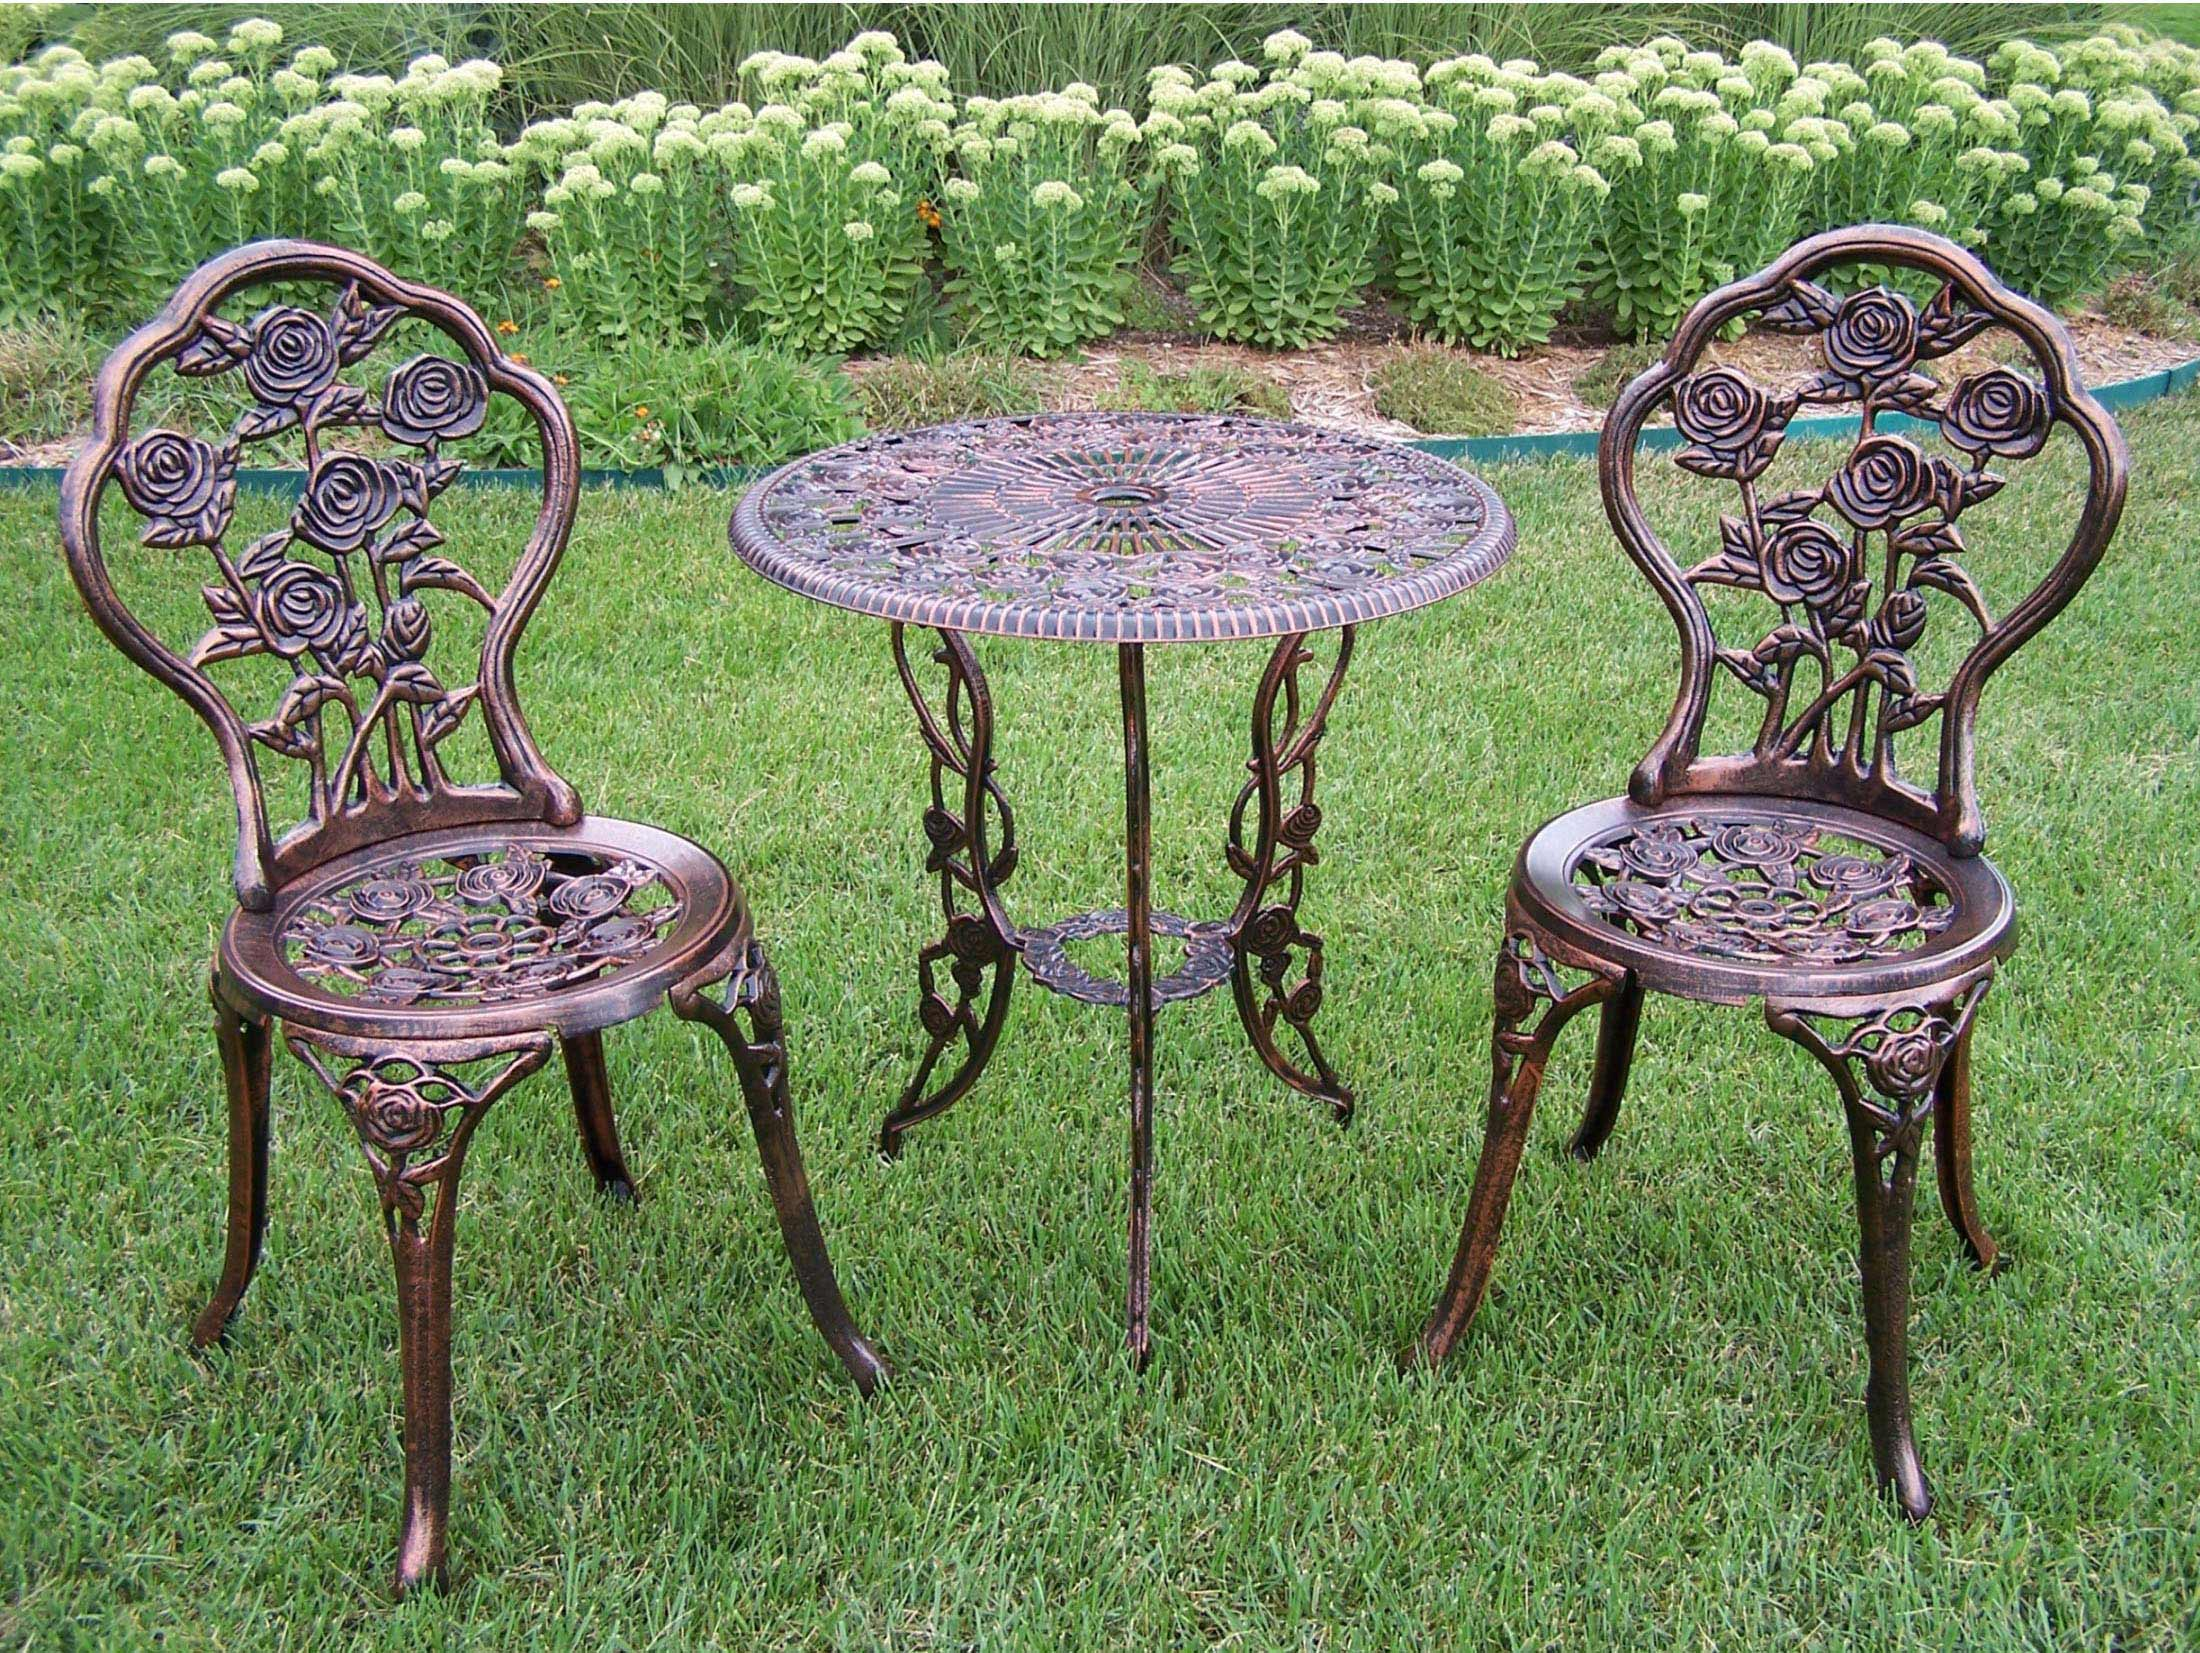 Wrought Iron 3 Piece Outdoor Setting Oakland Living Rose 3pc Patio Bistro Set With Cast